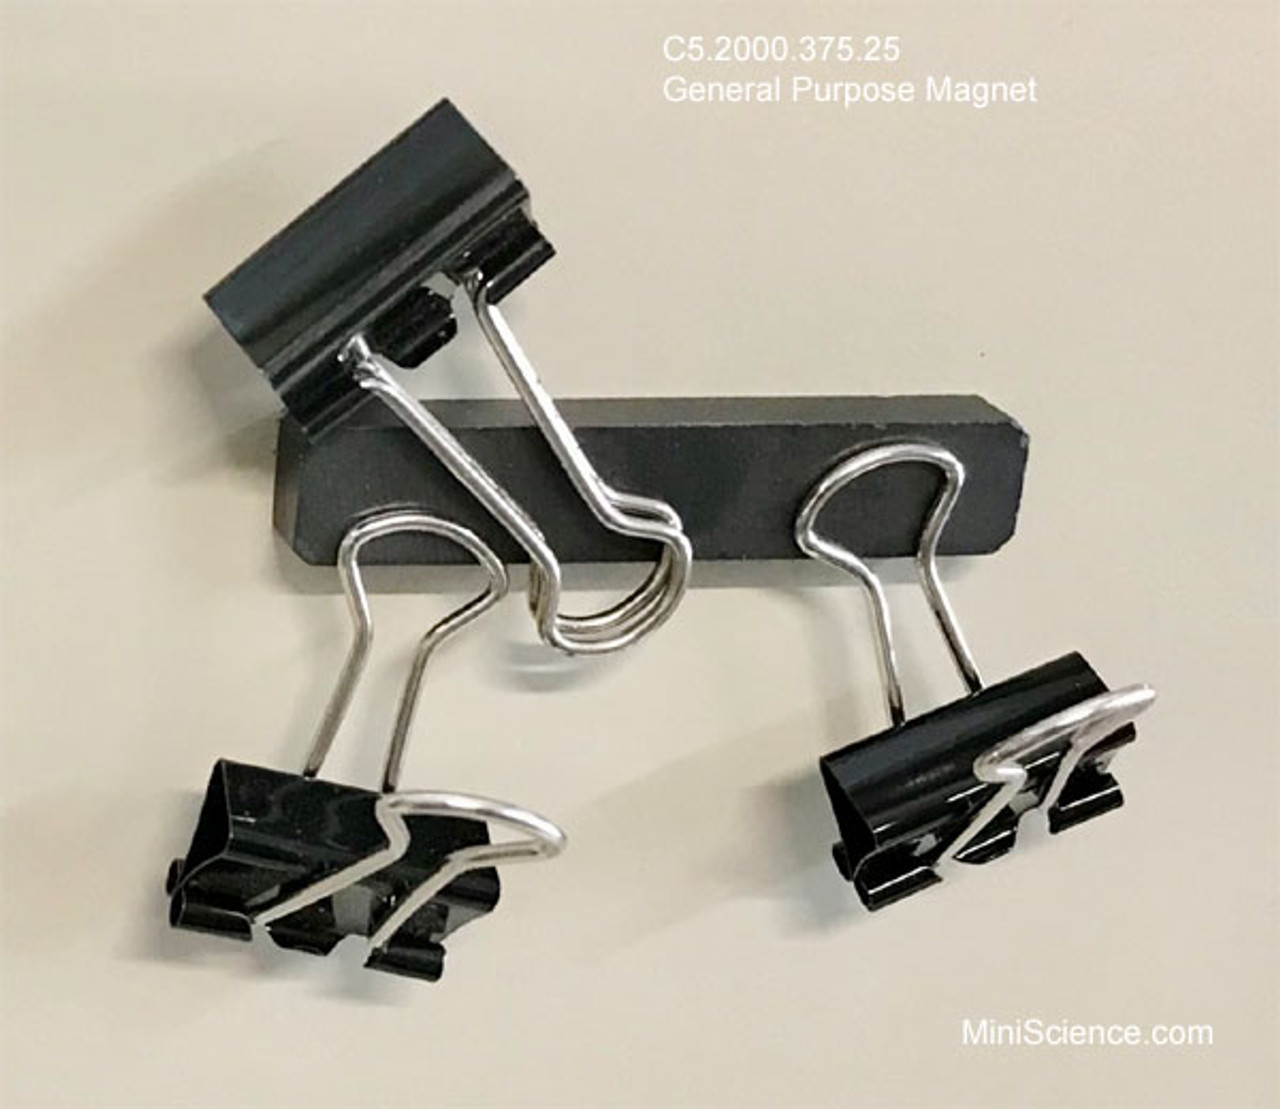 Binder clips on magnet block